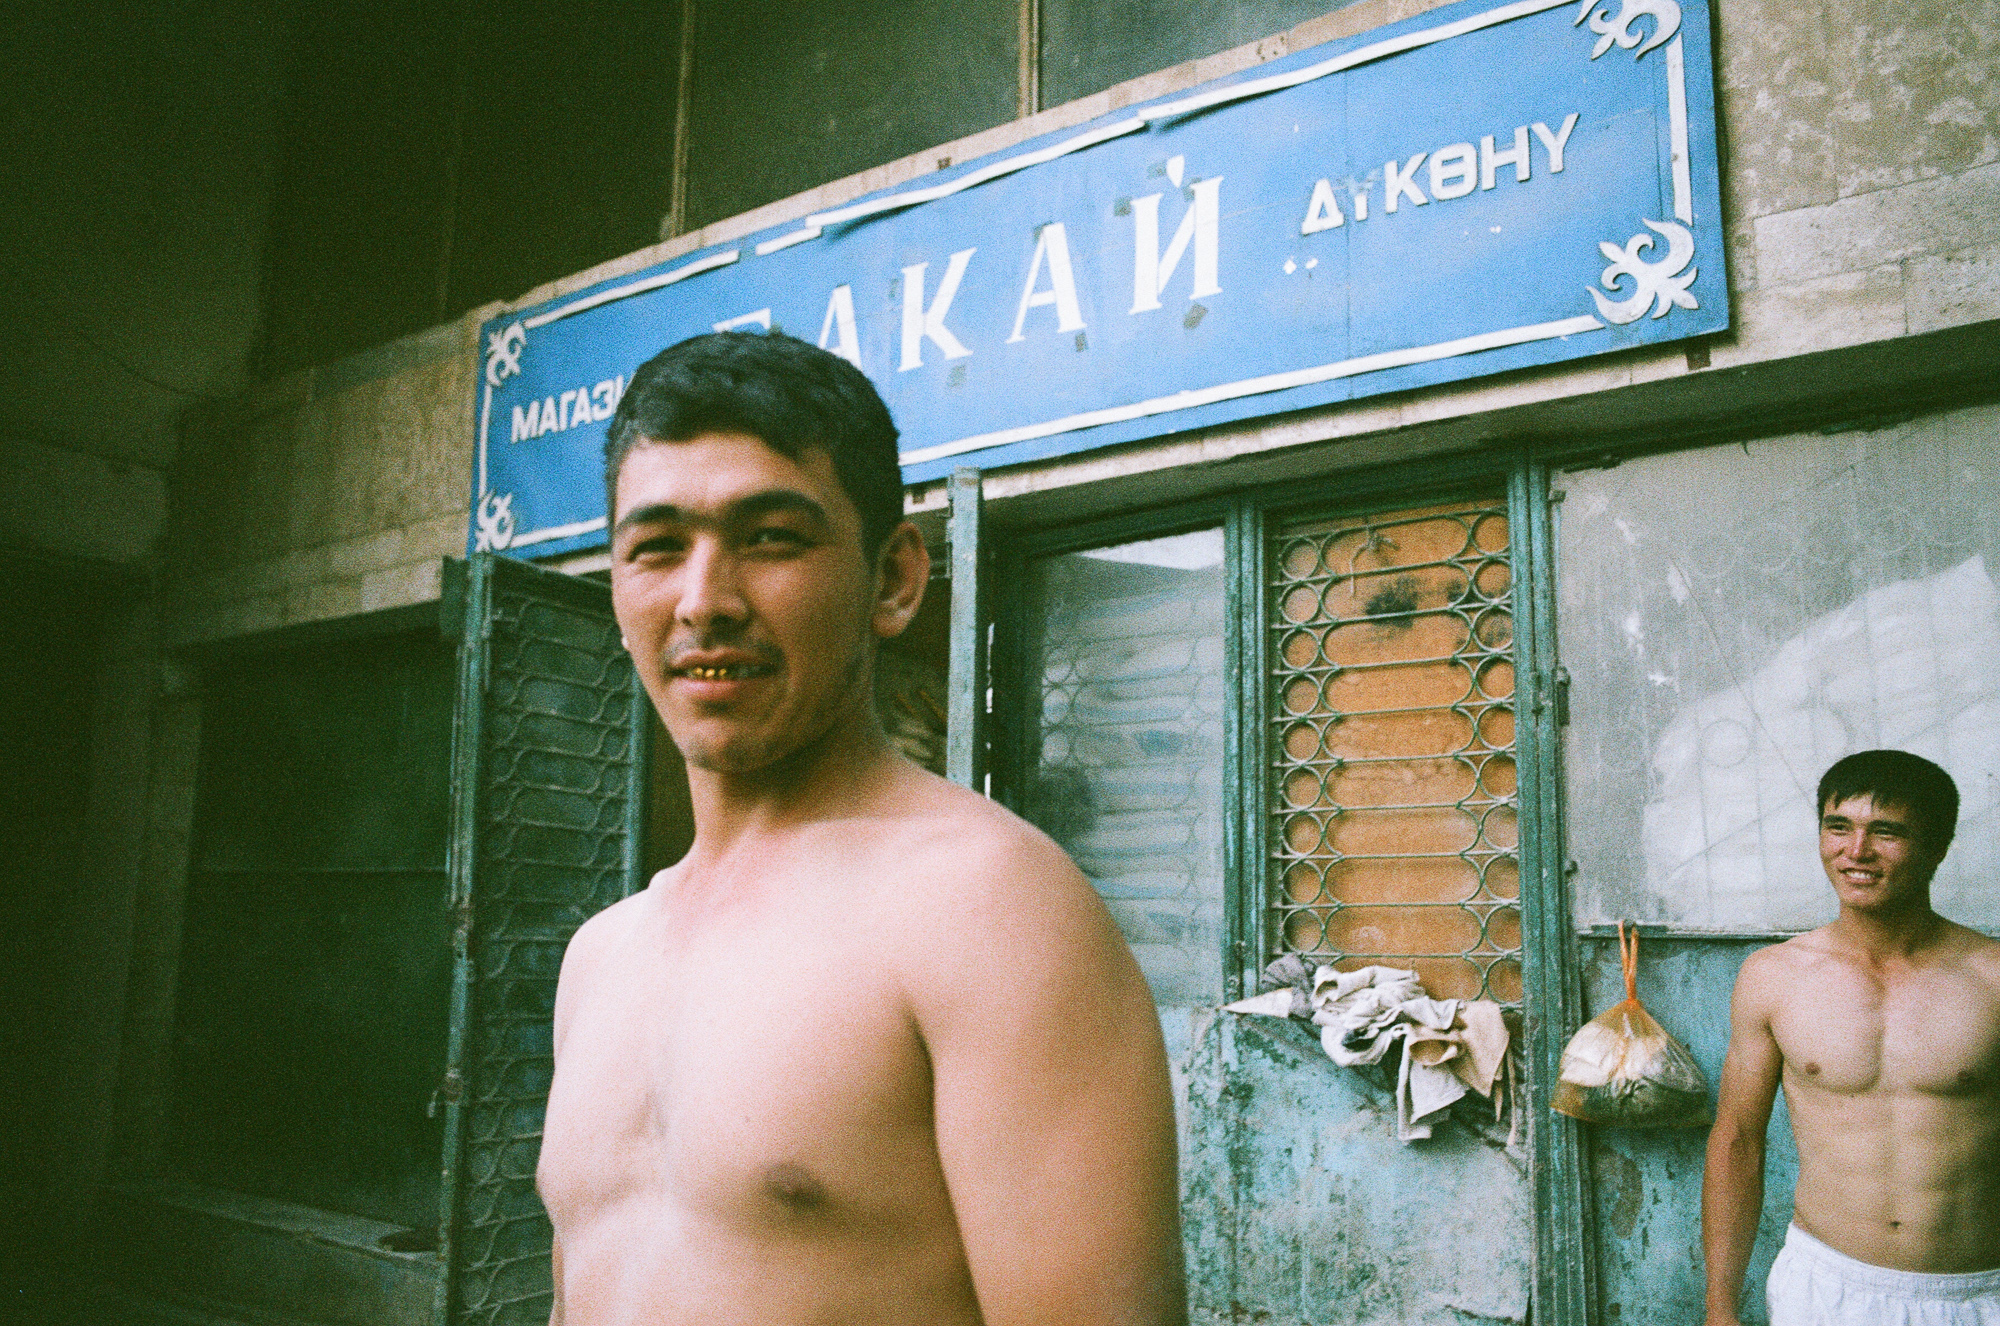 Golden smile! Its common for central asian countries to use metal teeth crowns that look golden when people smile